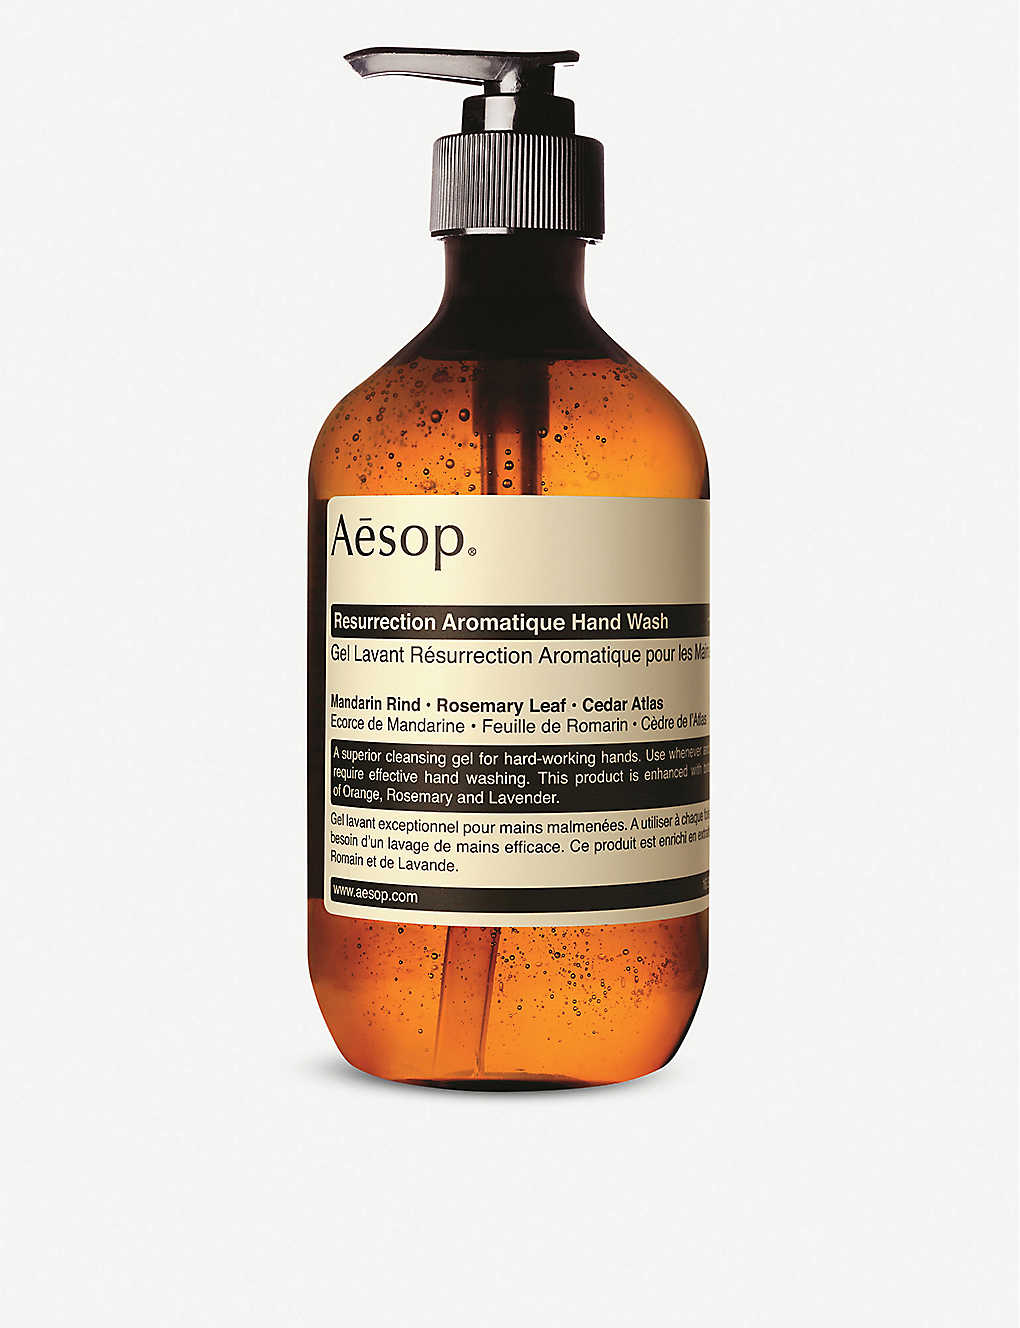 AESOP: Resurrection Aromatique hand wash 500ml